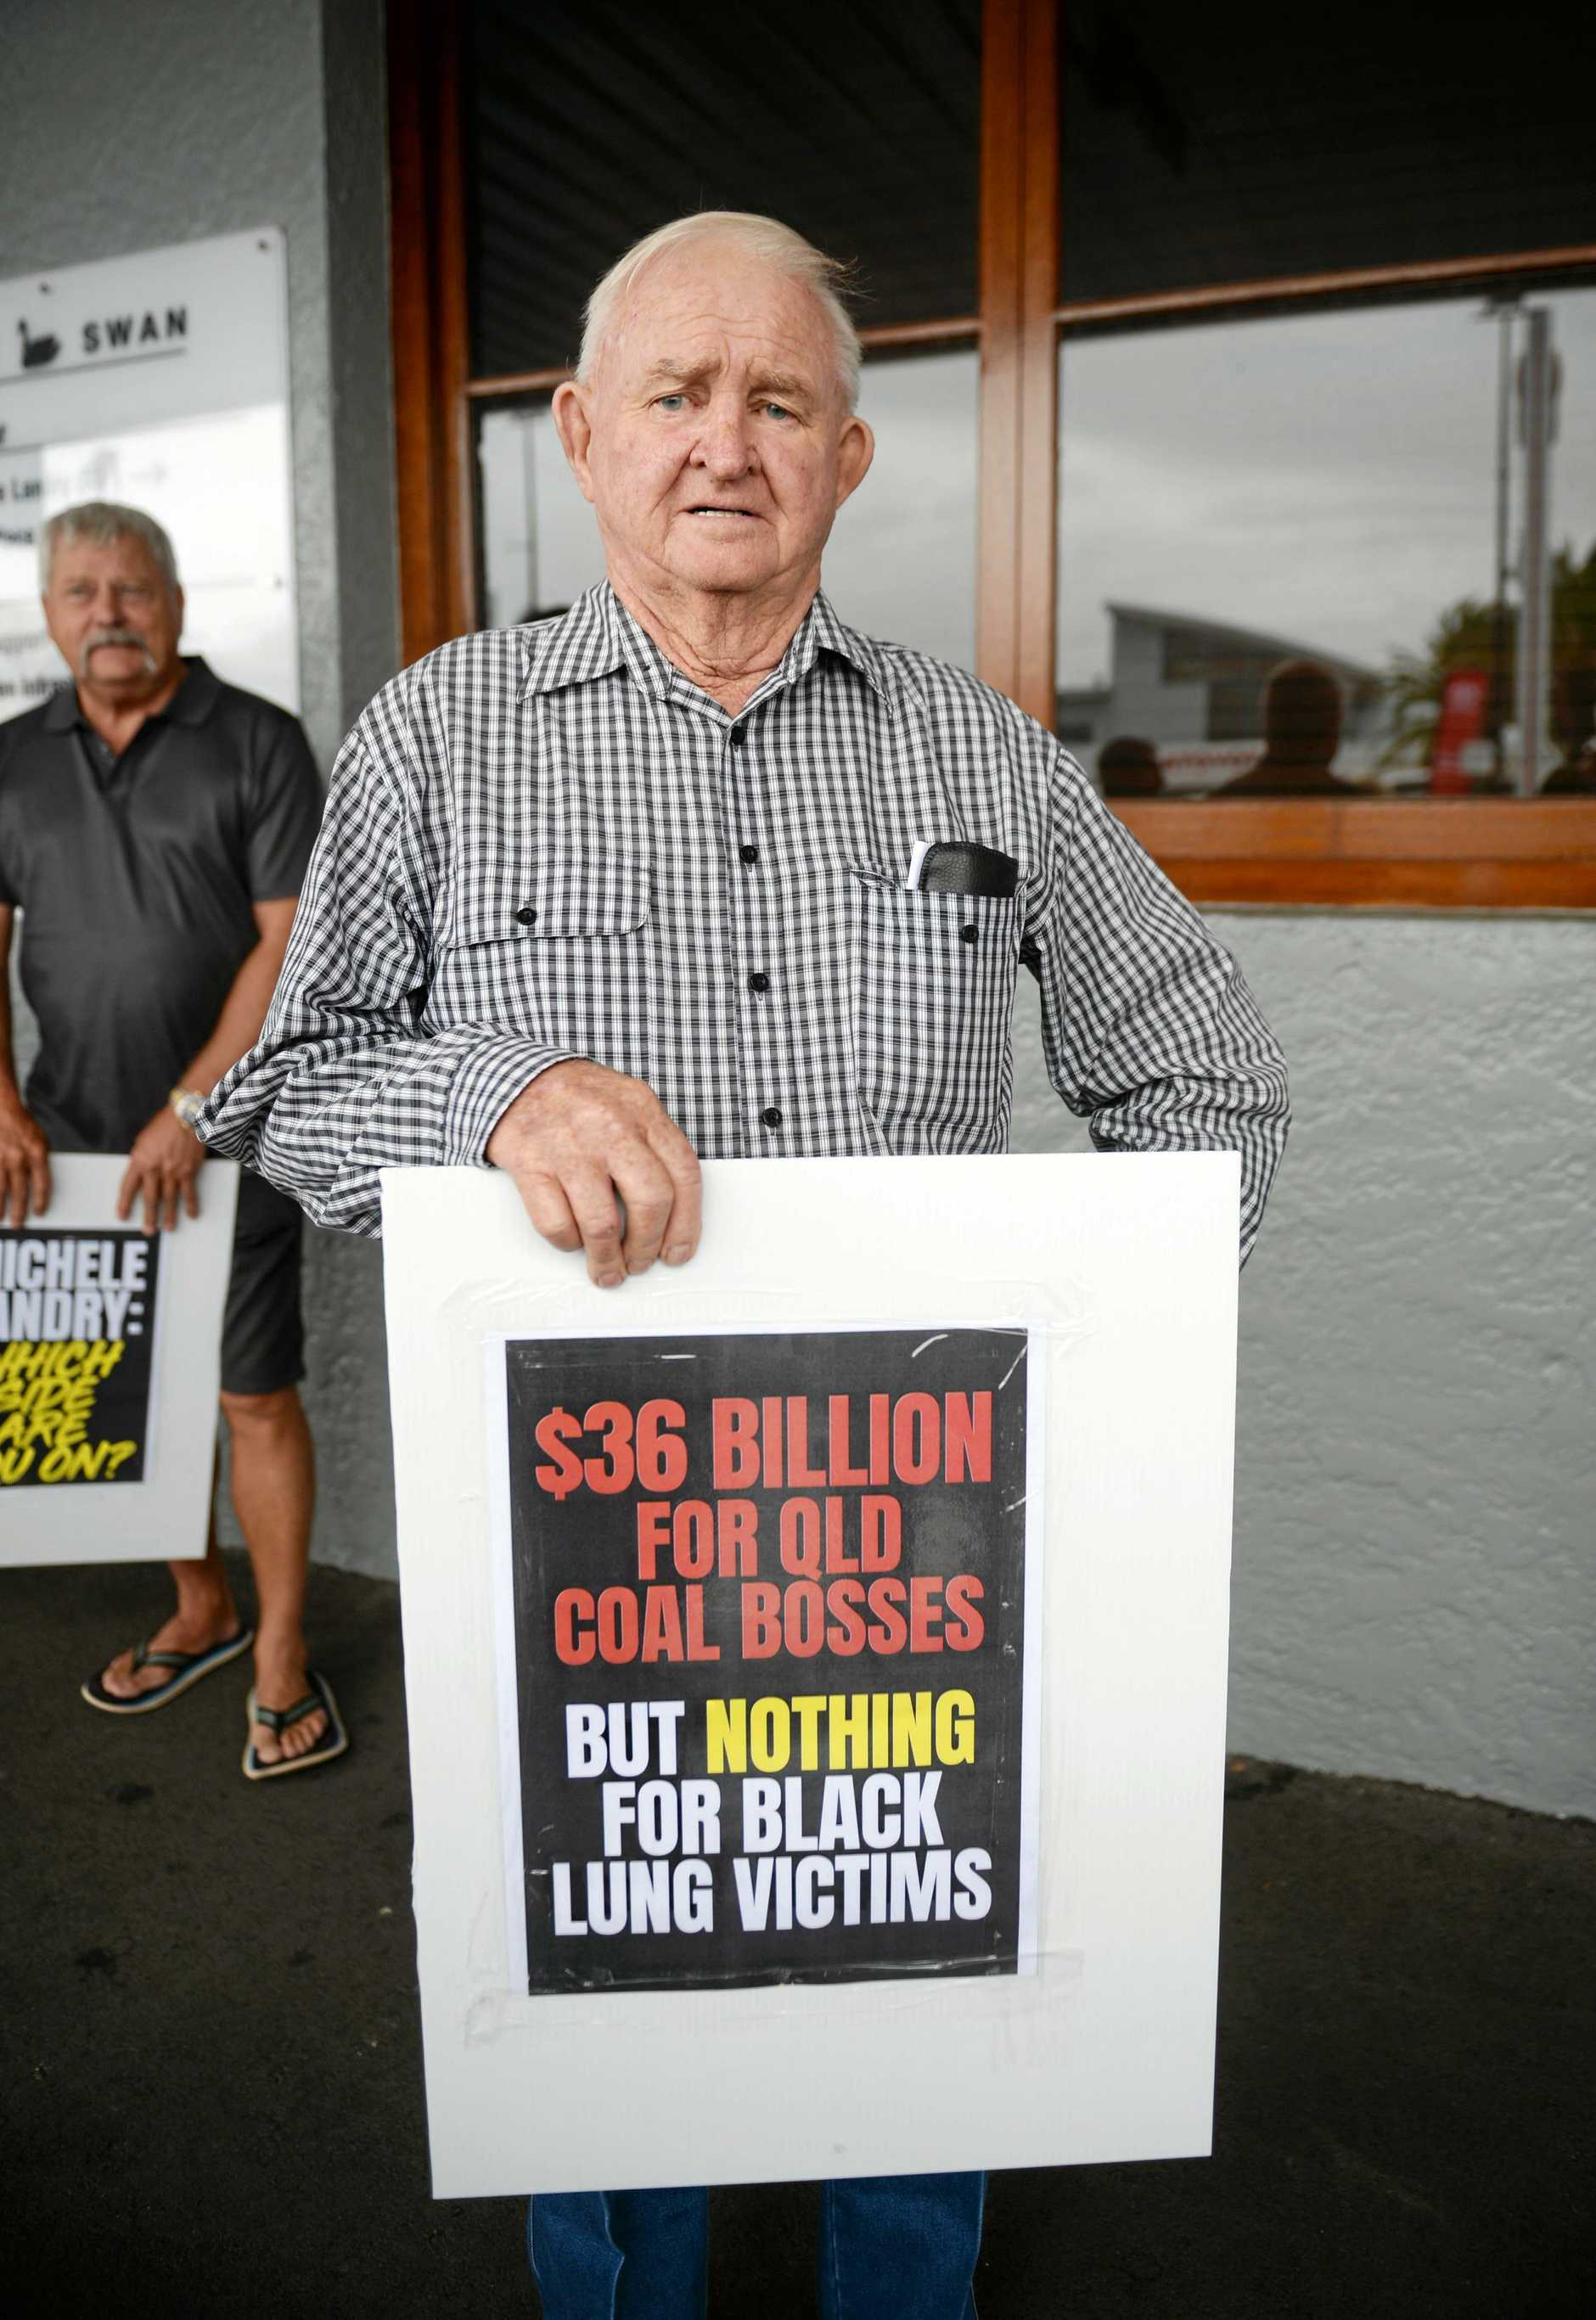 Victims seeking support fund backed by 1 per cent per tonne, per week levy on coal production. Allan White